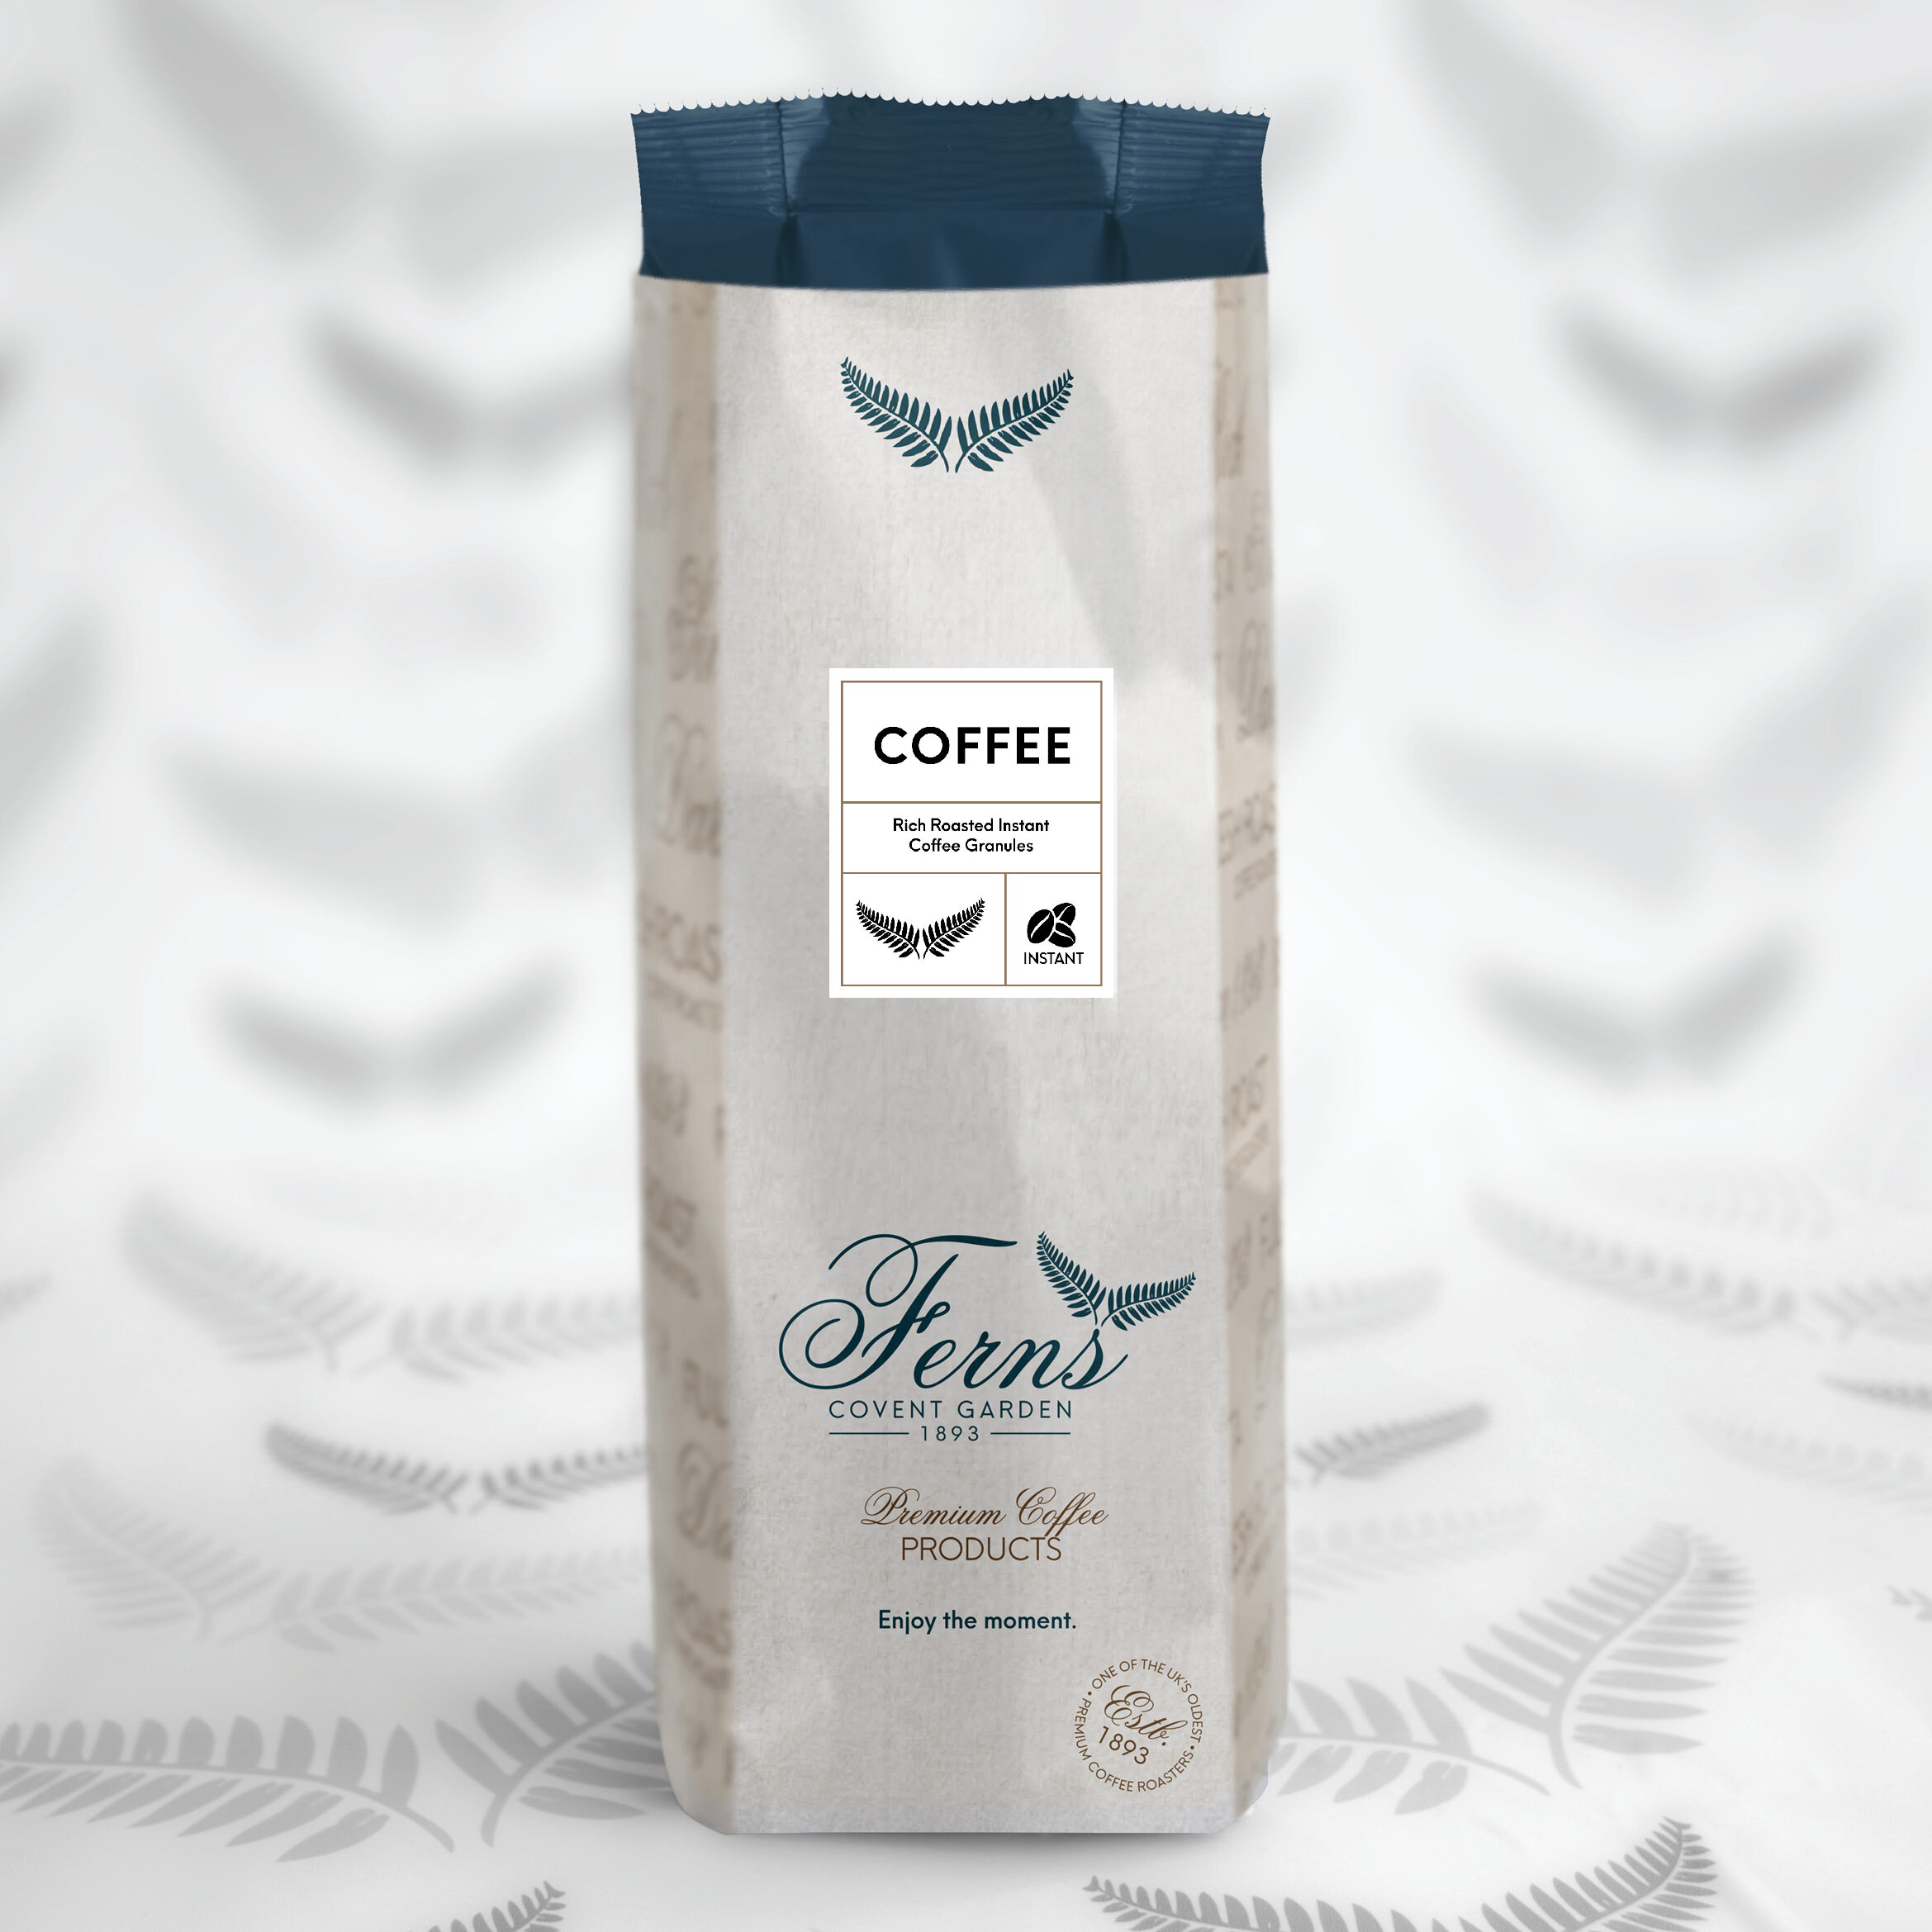 FERNS-SQUARE-COFFEE RICH ROASTED INSTANT.jpg